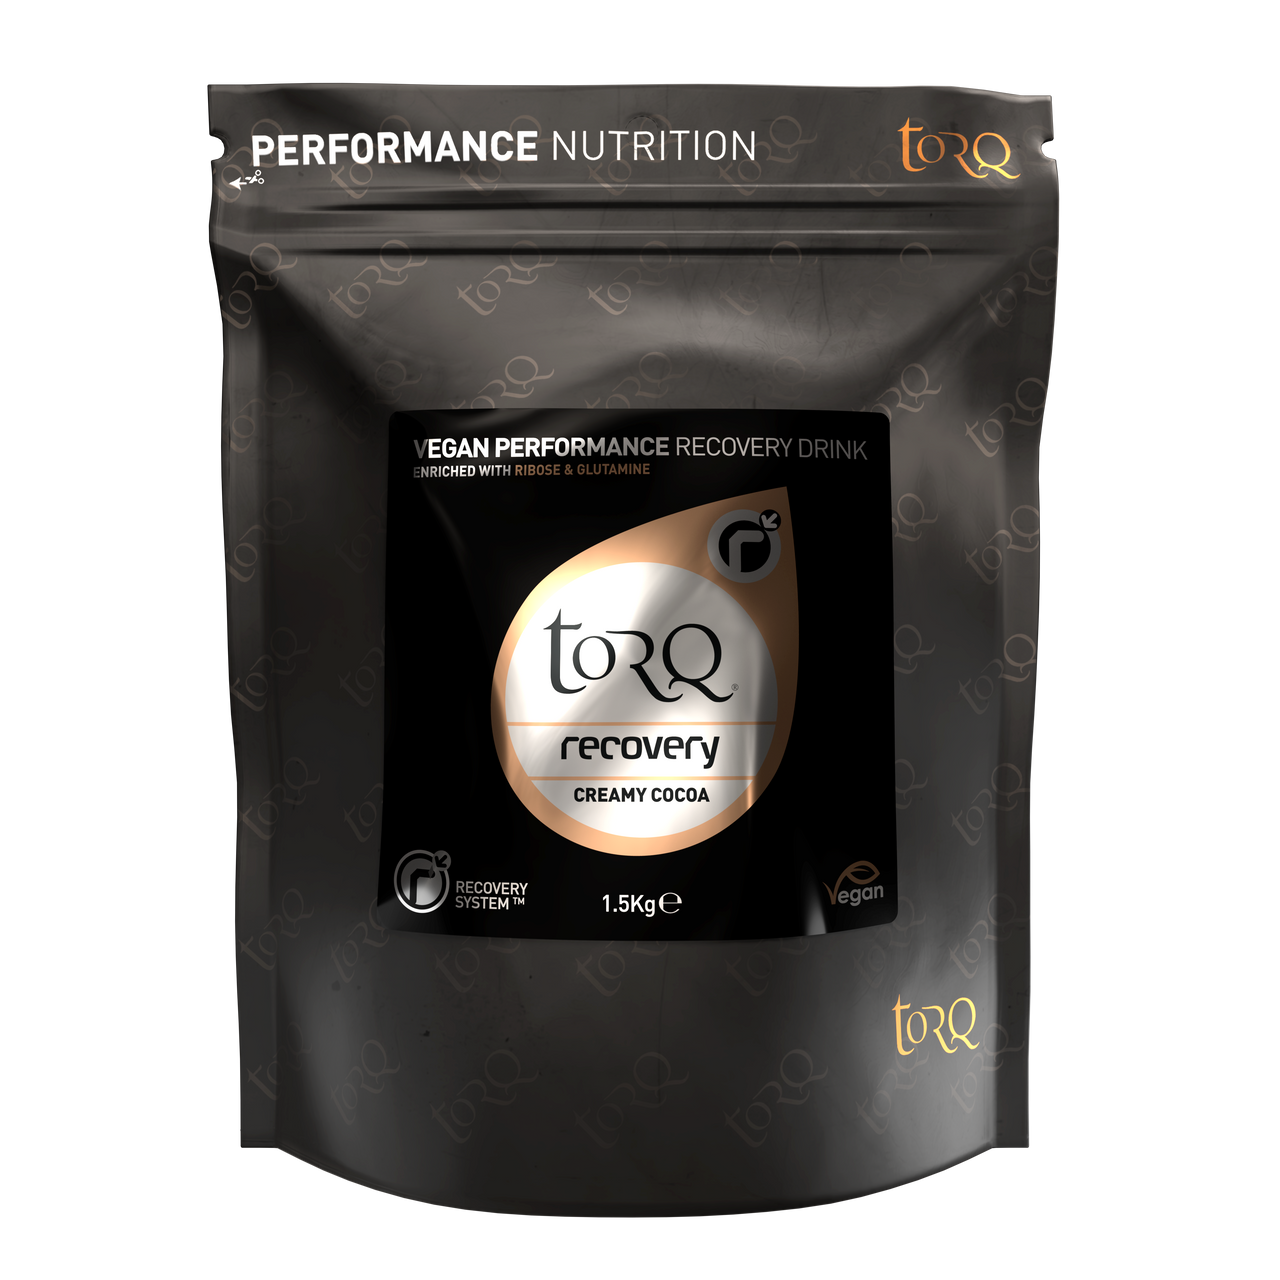 TORQ Vegan Recovery Drink - Creamy Cocoa - 15 Serving Pouch